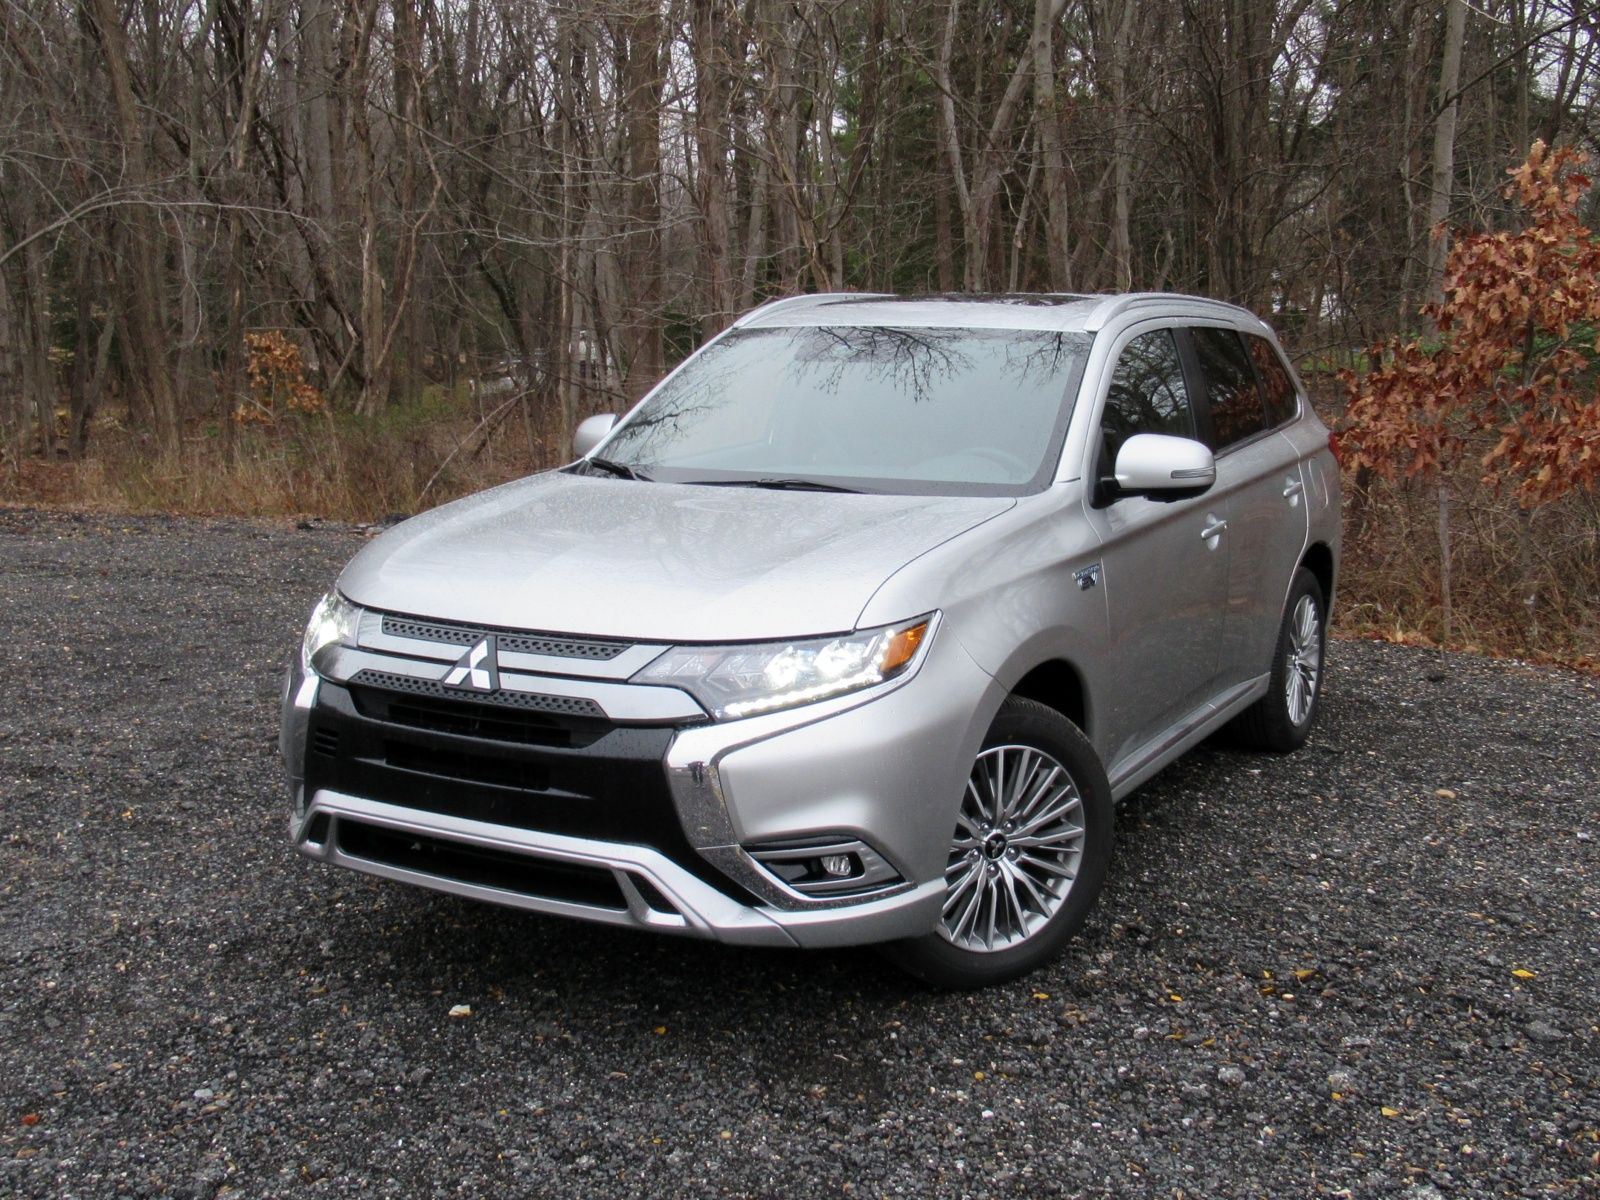 2020 Mitsubishi Outlander Phev Driven Top Speed In 2020 Outlander Phev Mitsubishi Outlander Mitsubishi